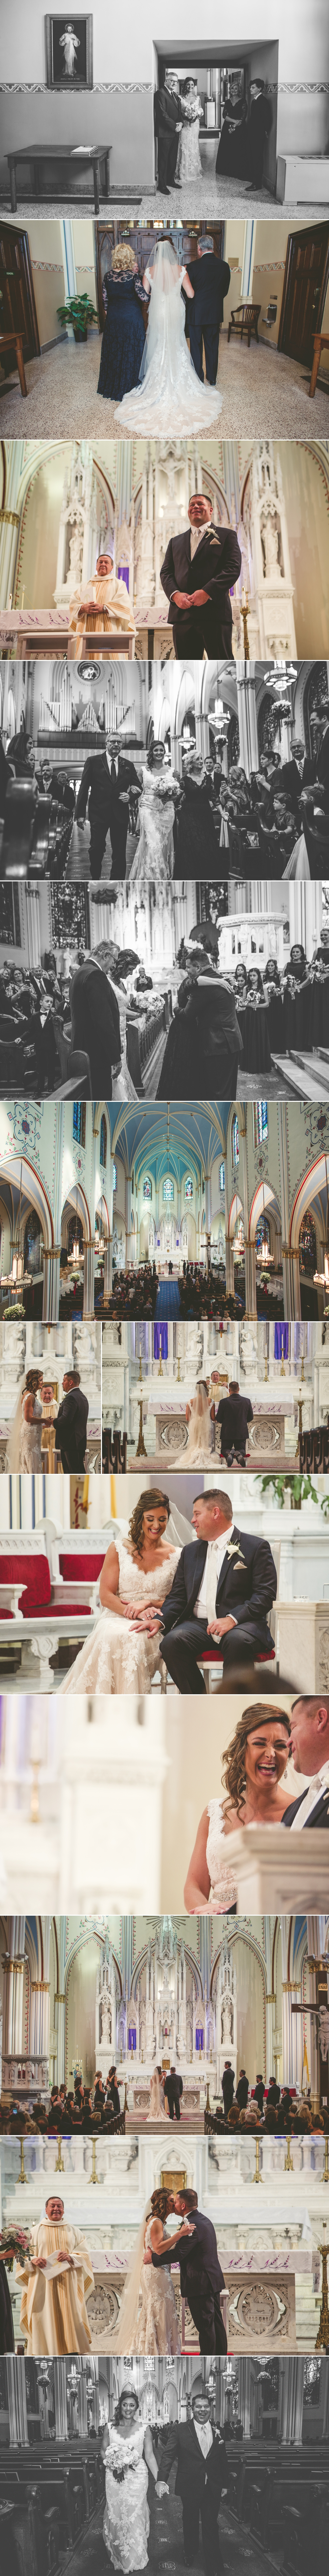 jason_domingues_photography_best_kansas_city_wedding_photographer_kc_weddings_redemptorist_church_28_event_space_december0002.JPG